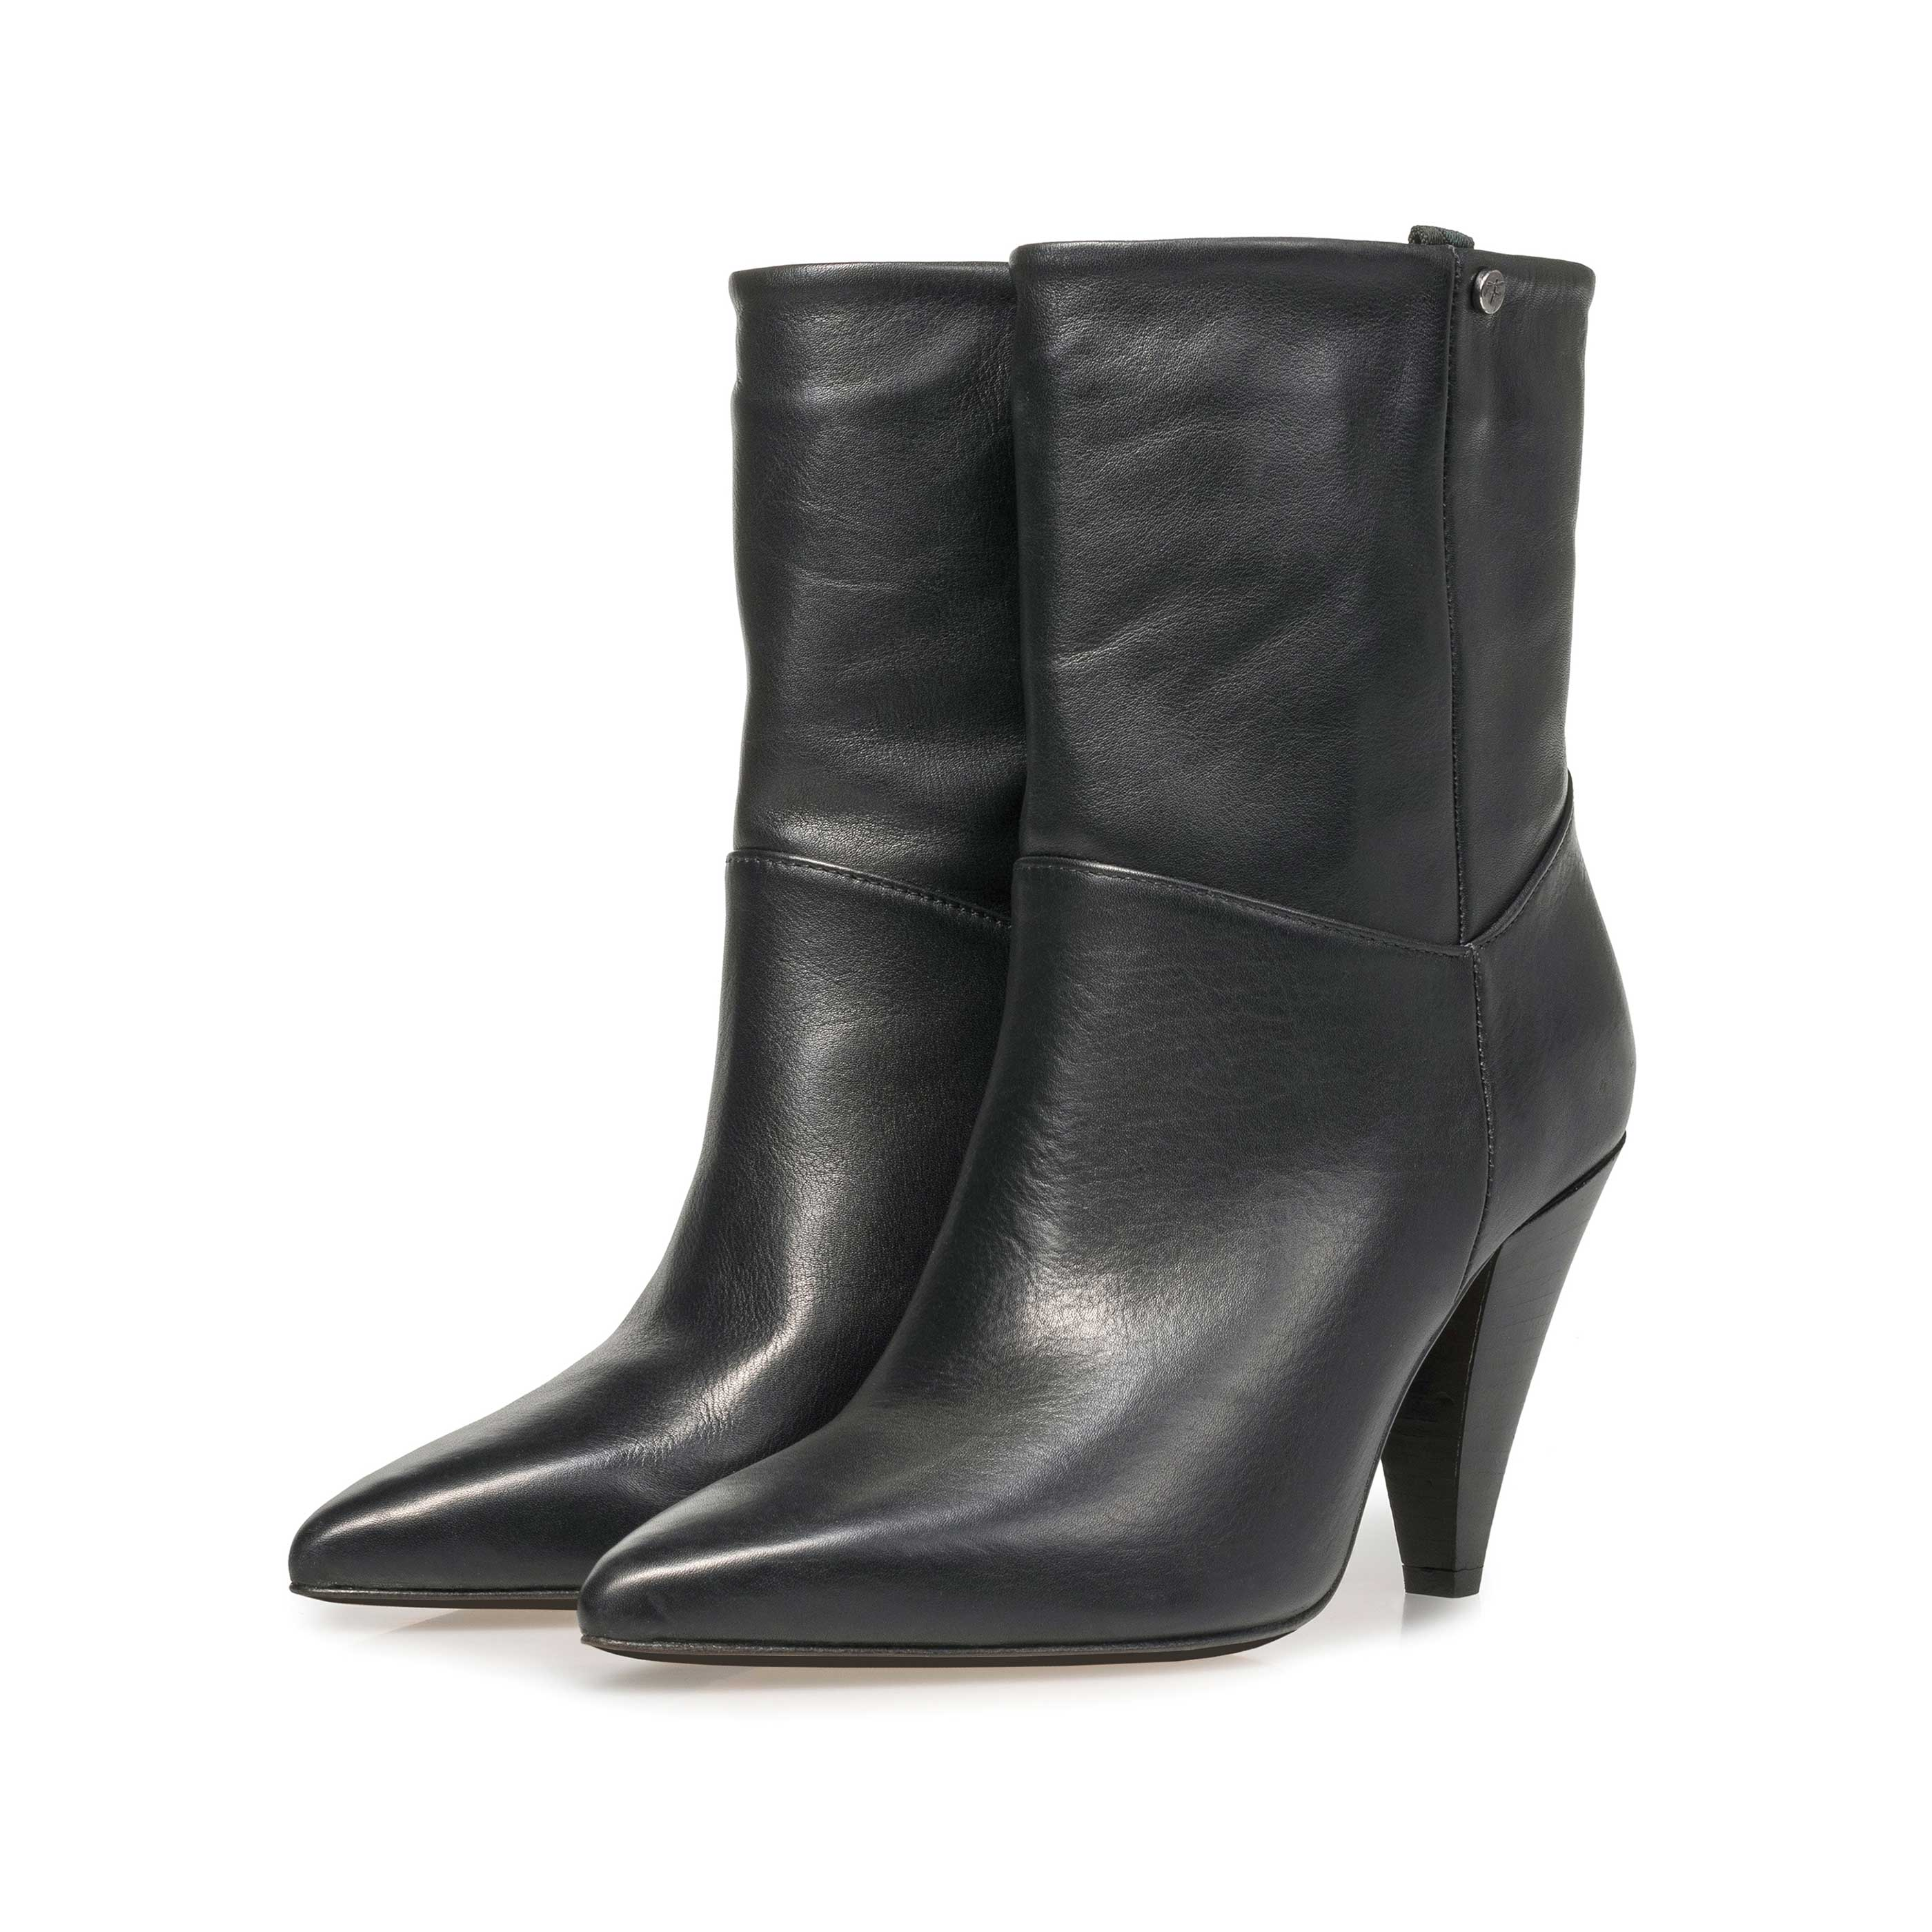 85630/01 - Black nappa leather high boots